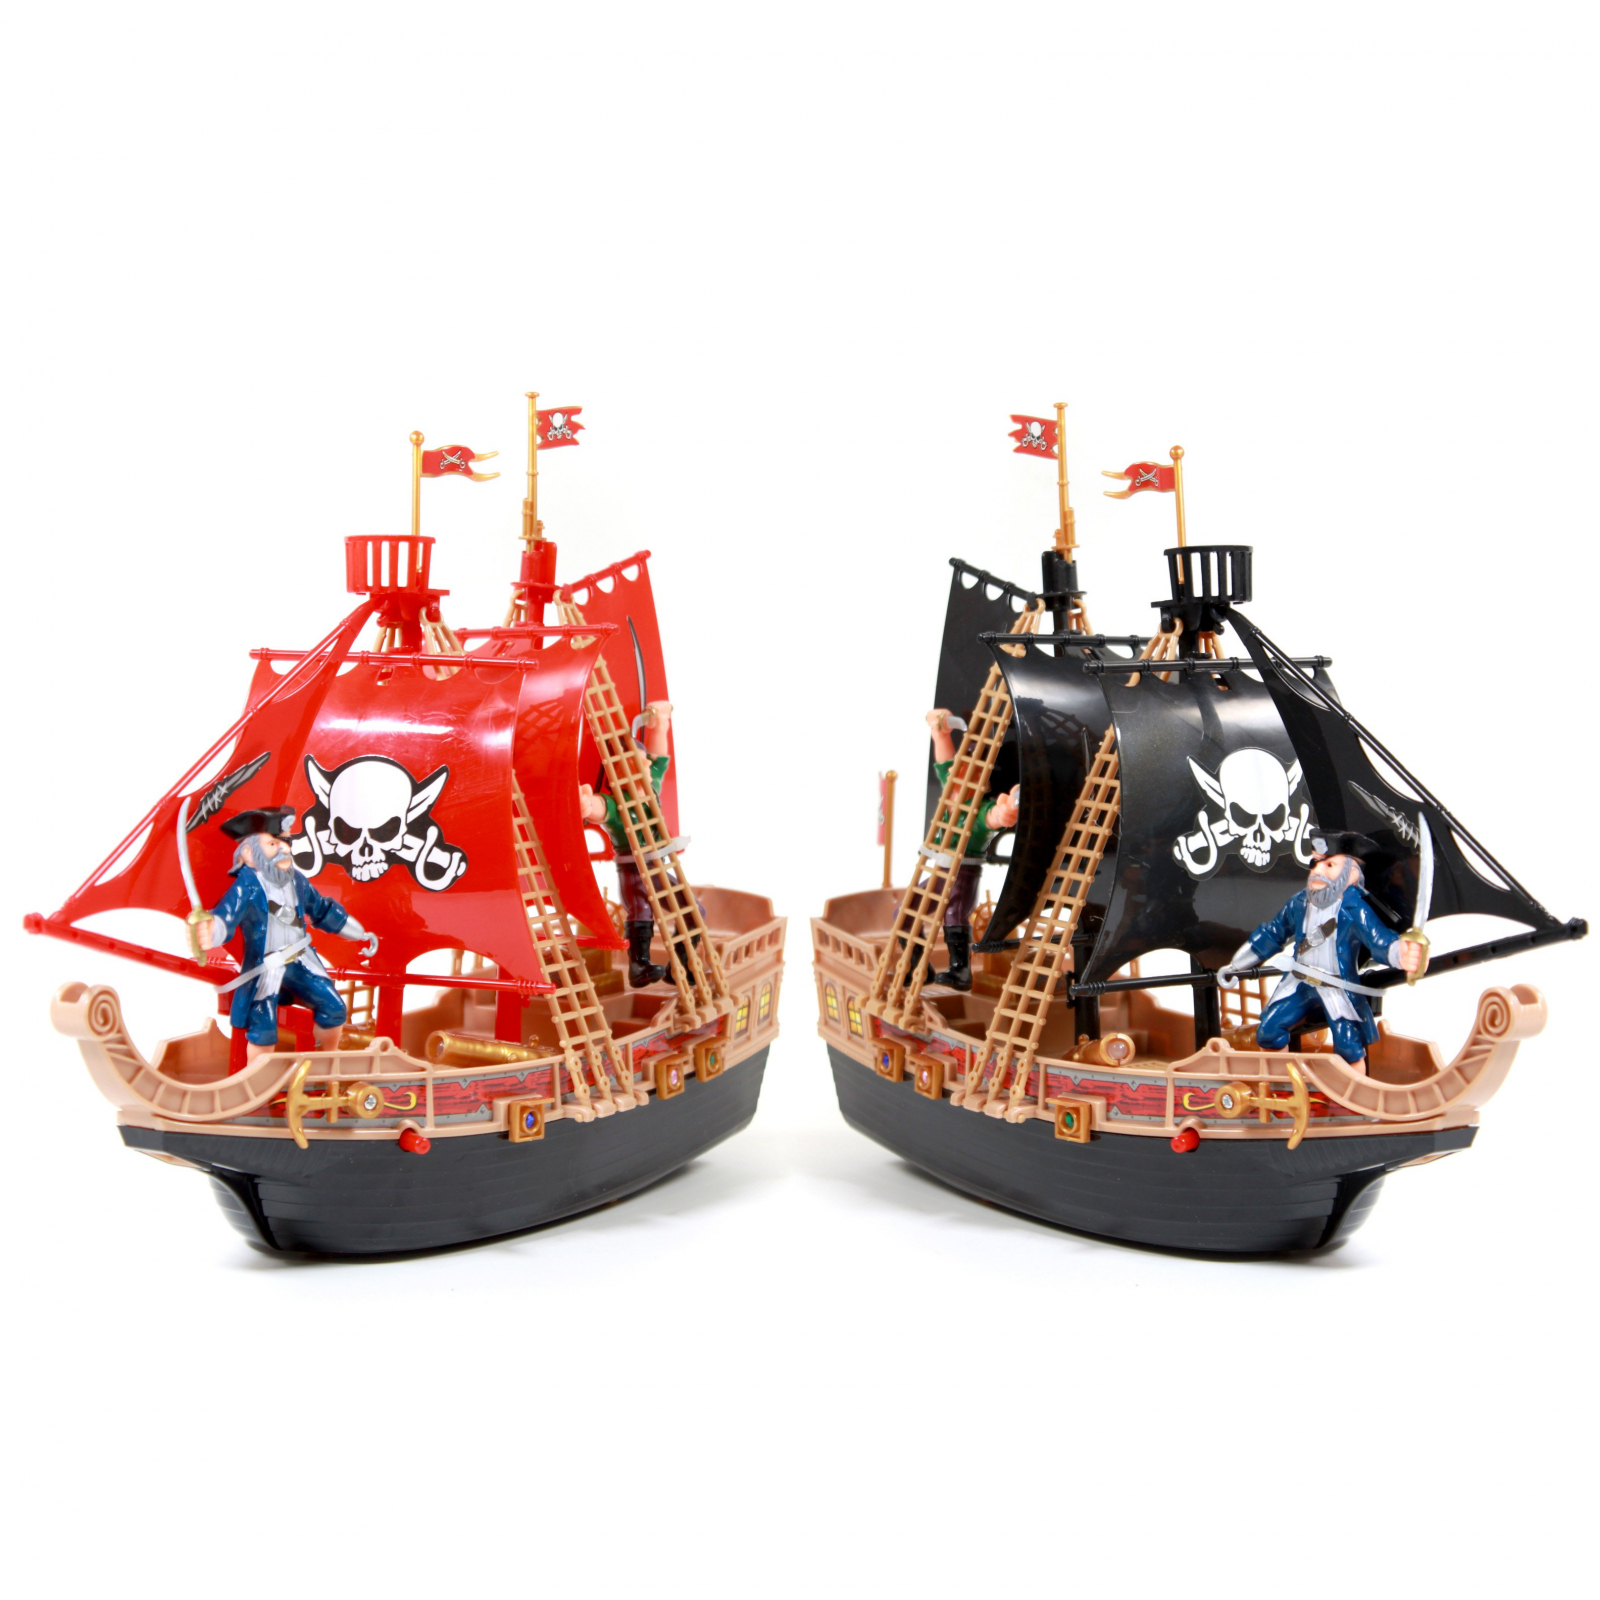 KidPlay Products Scurvy Boys Pirate Ship Adventure LIGHT UP, SOUND Toy (2-Pack)